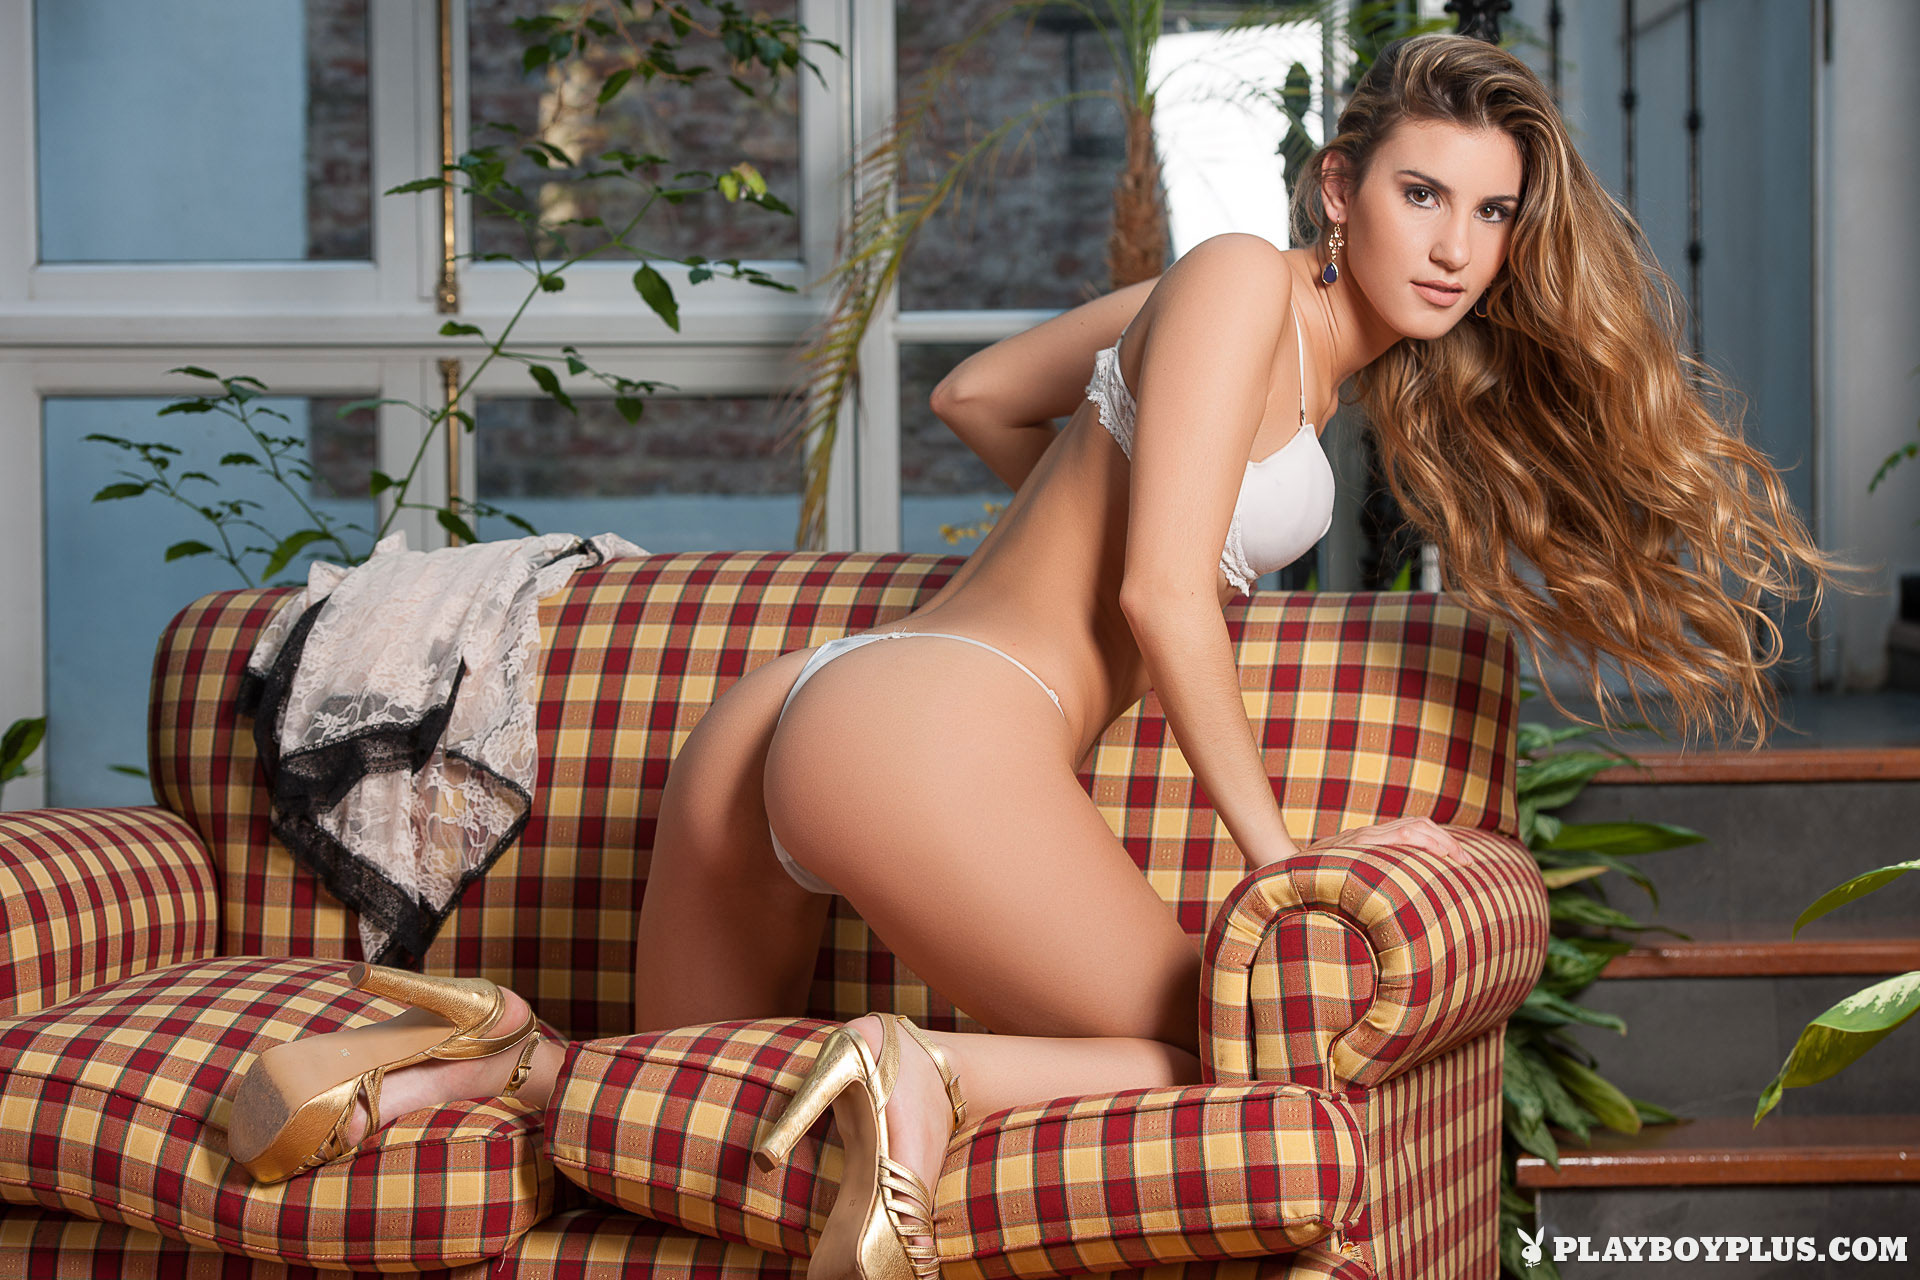 camila-ostende-naked-on-sofa-playboy-04